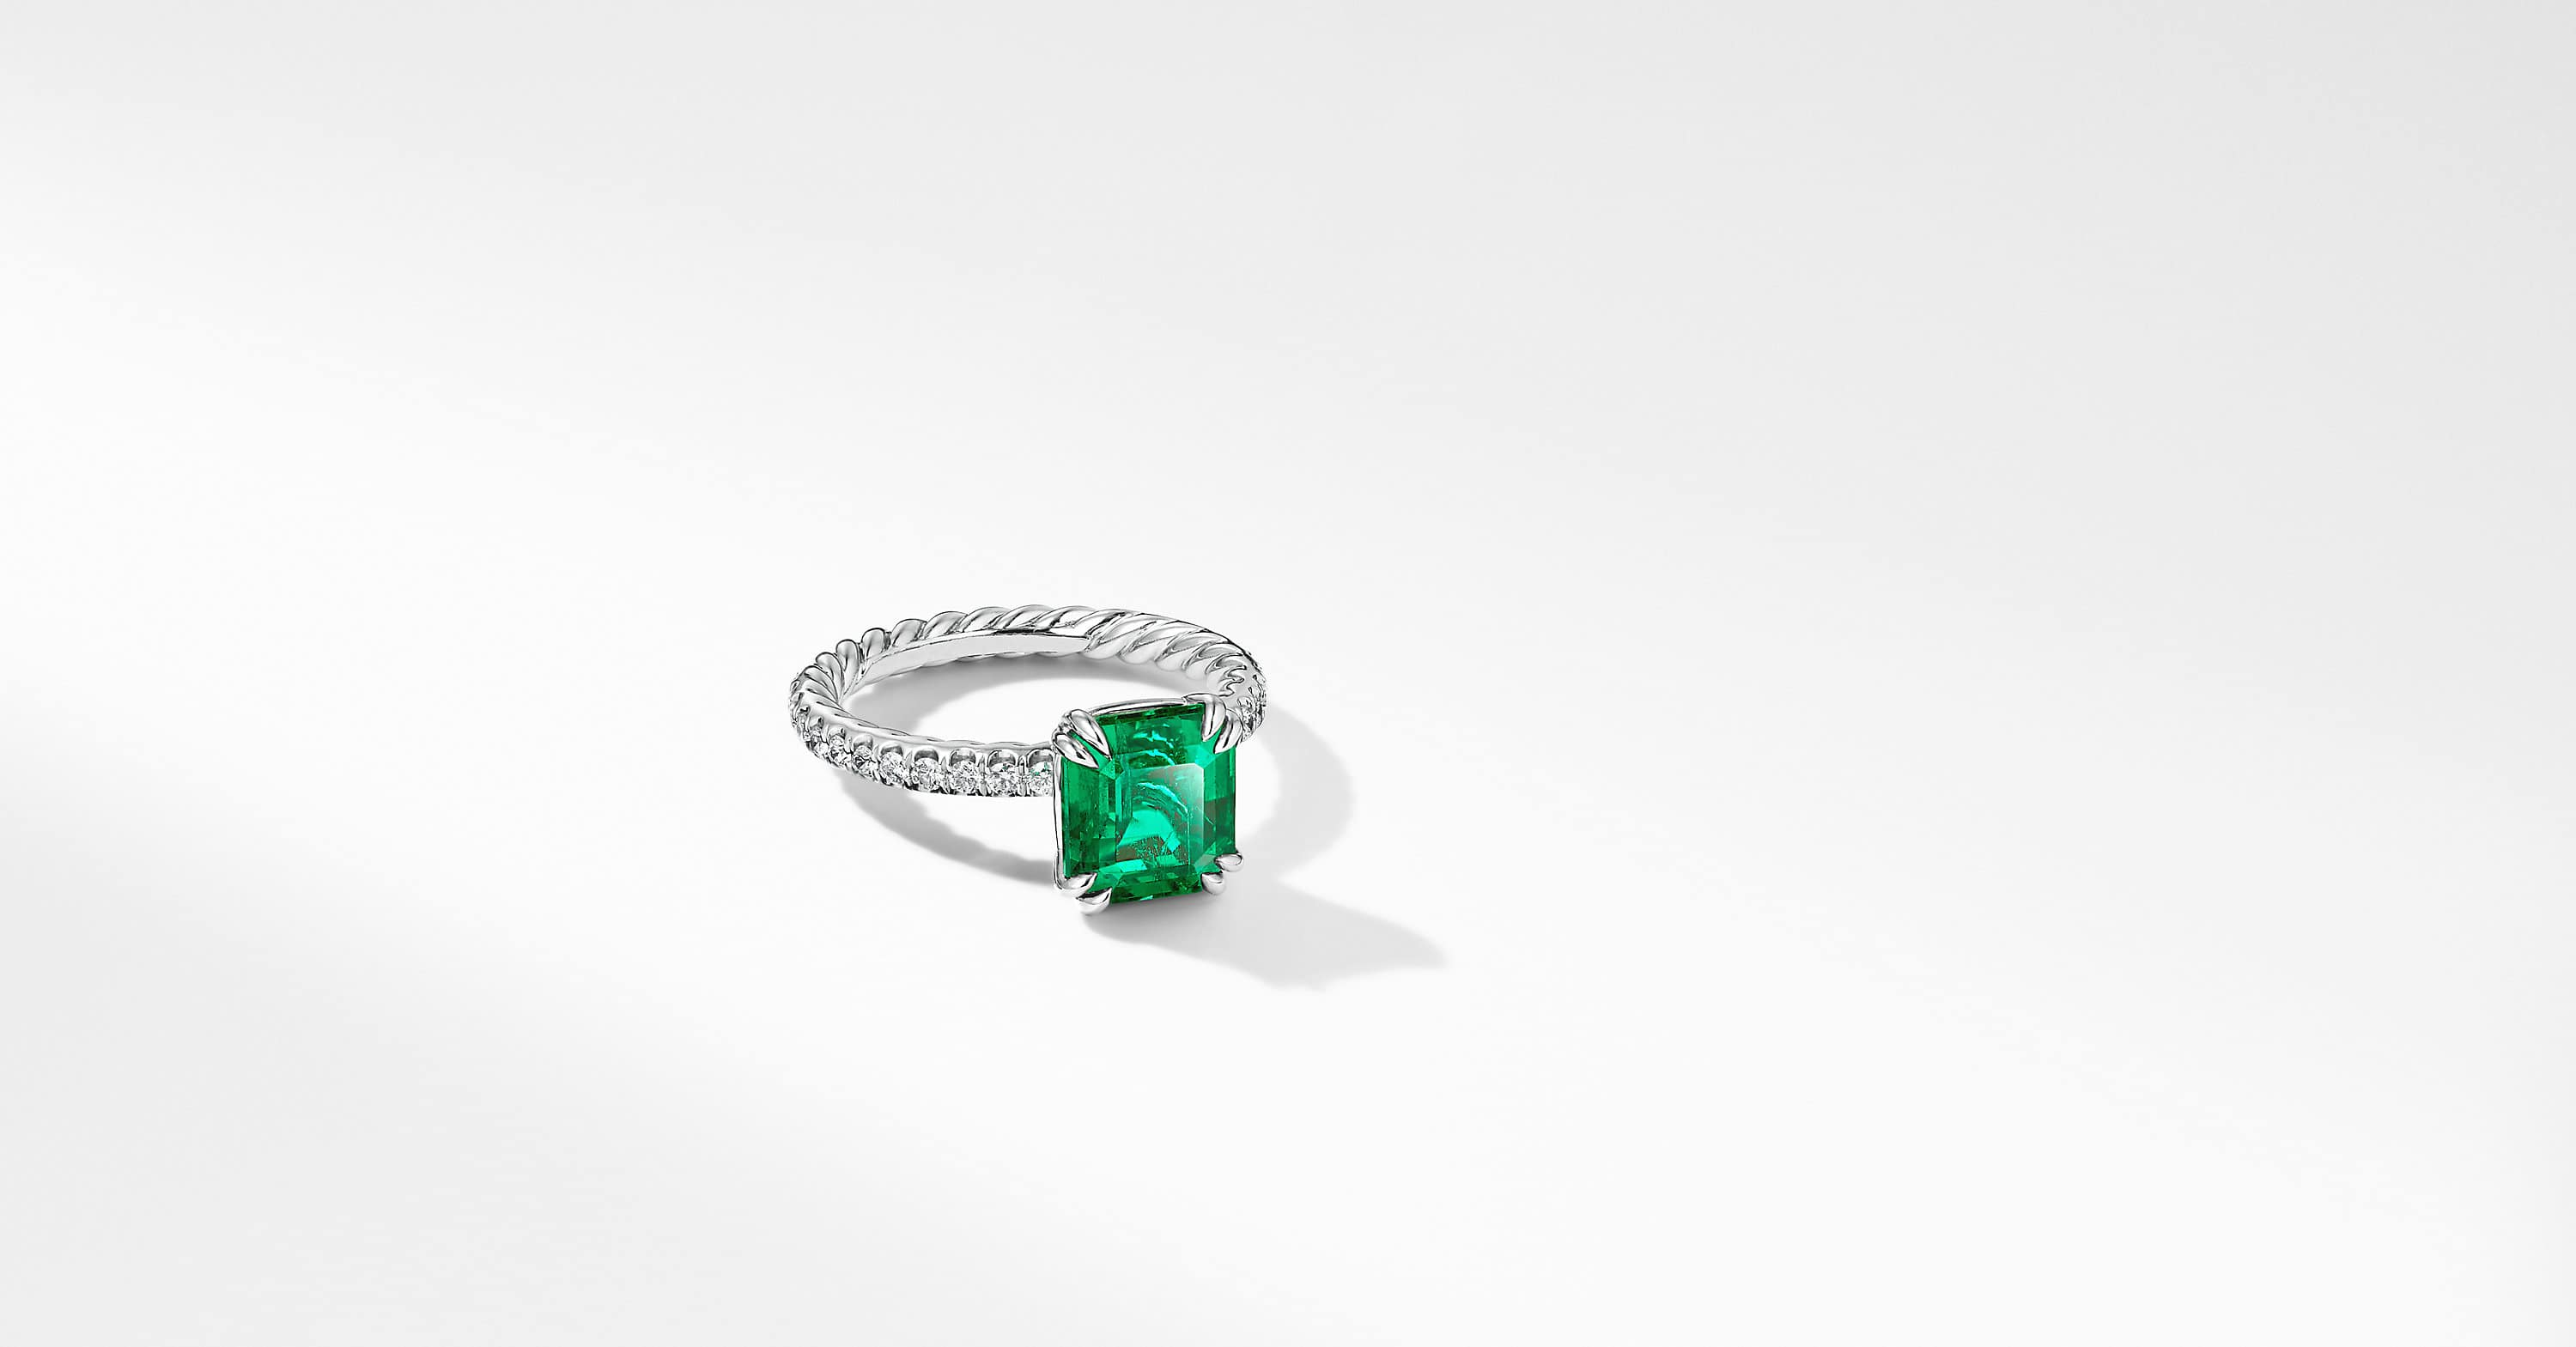 DY Eden Pave Engagement Ring with Green Emerald in Platinum, Emerald